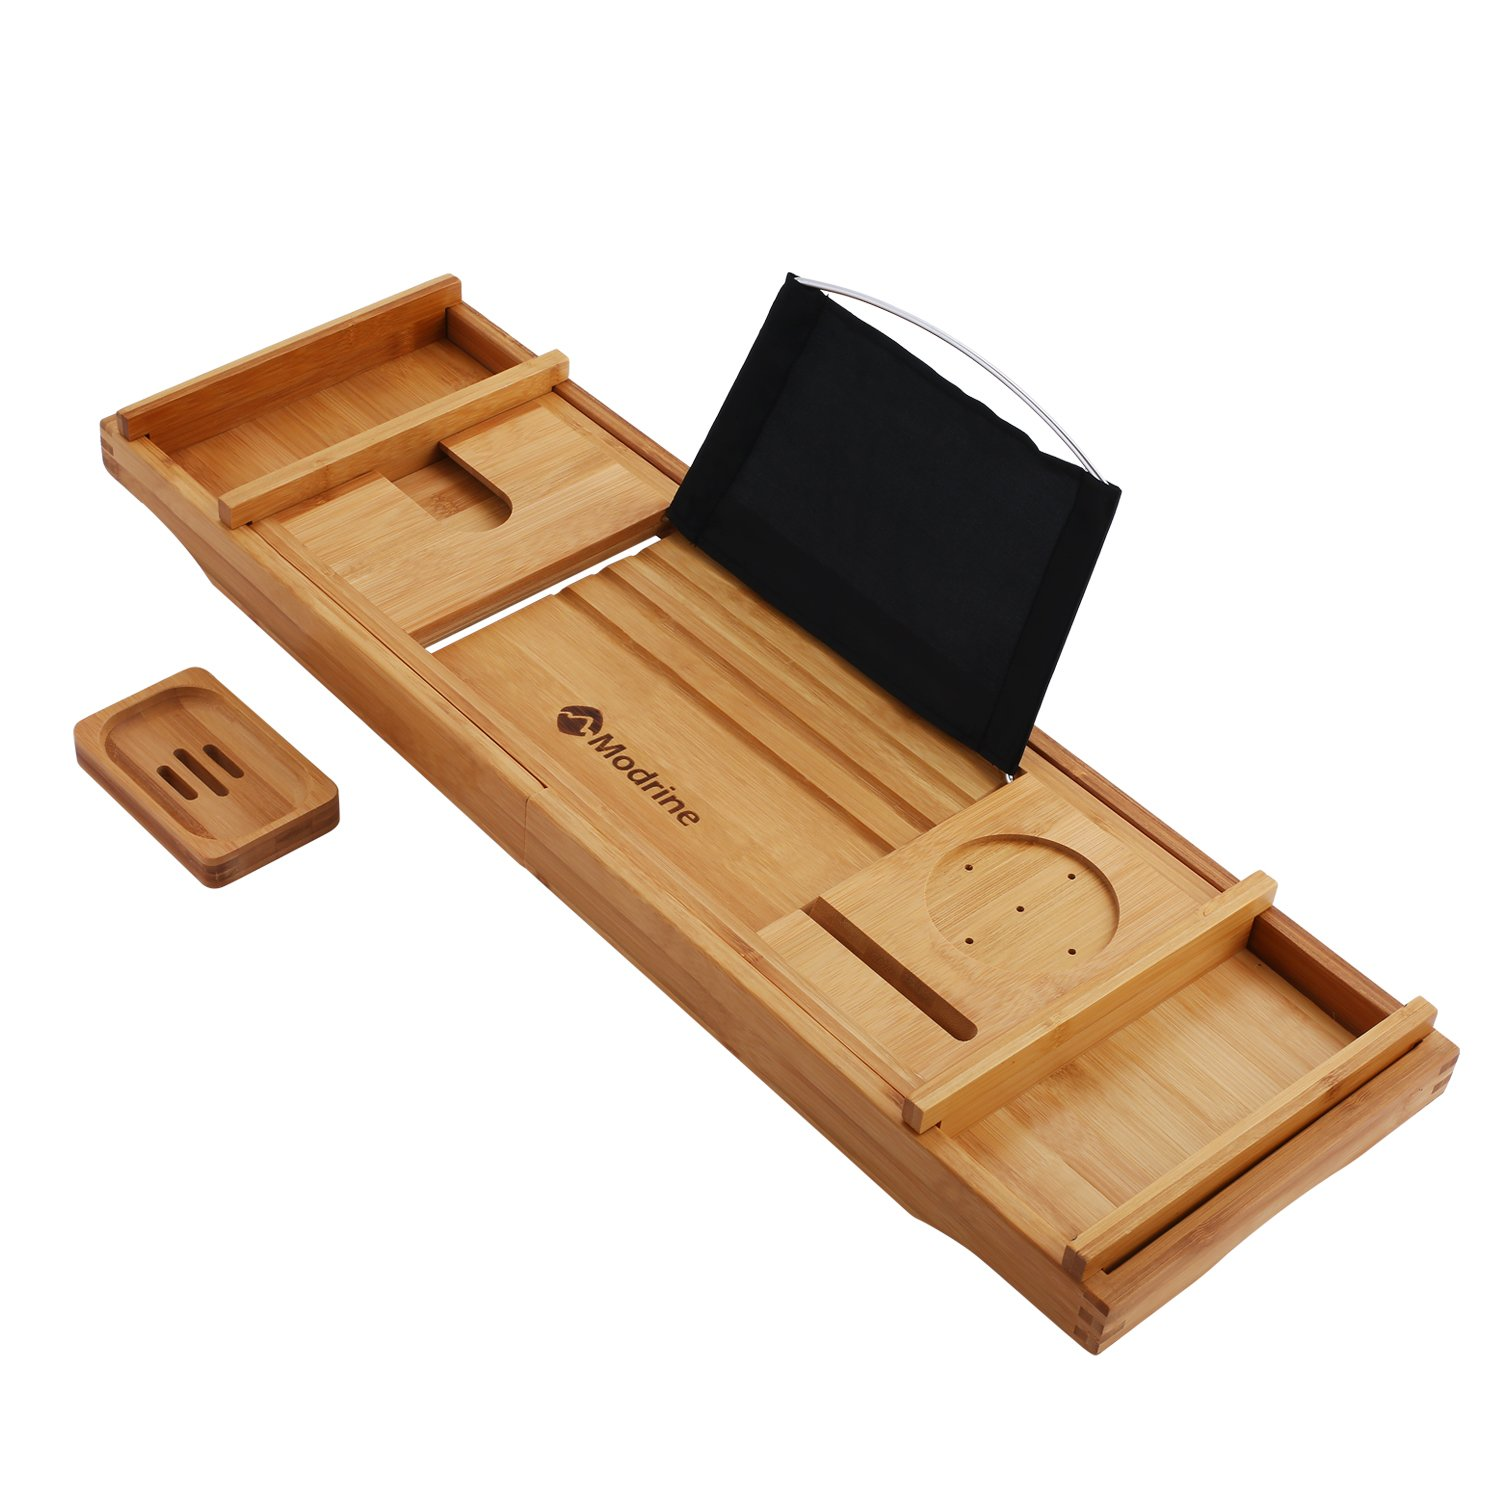 Modrine Expandable Bamboo Bathtub Caddy - Adjustable Wooden Serving Tray and Organizer for Any Size Bathtub - Phone and Tablet Compartments -Wine holder bathtub tray